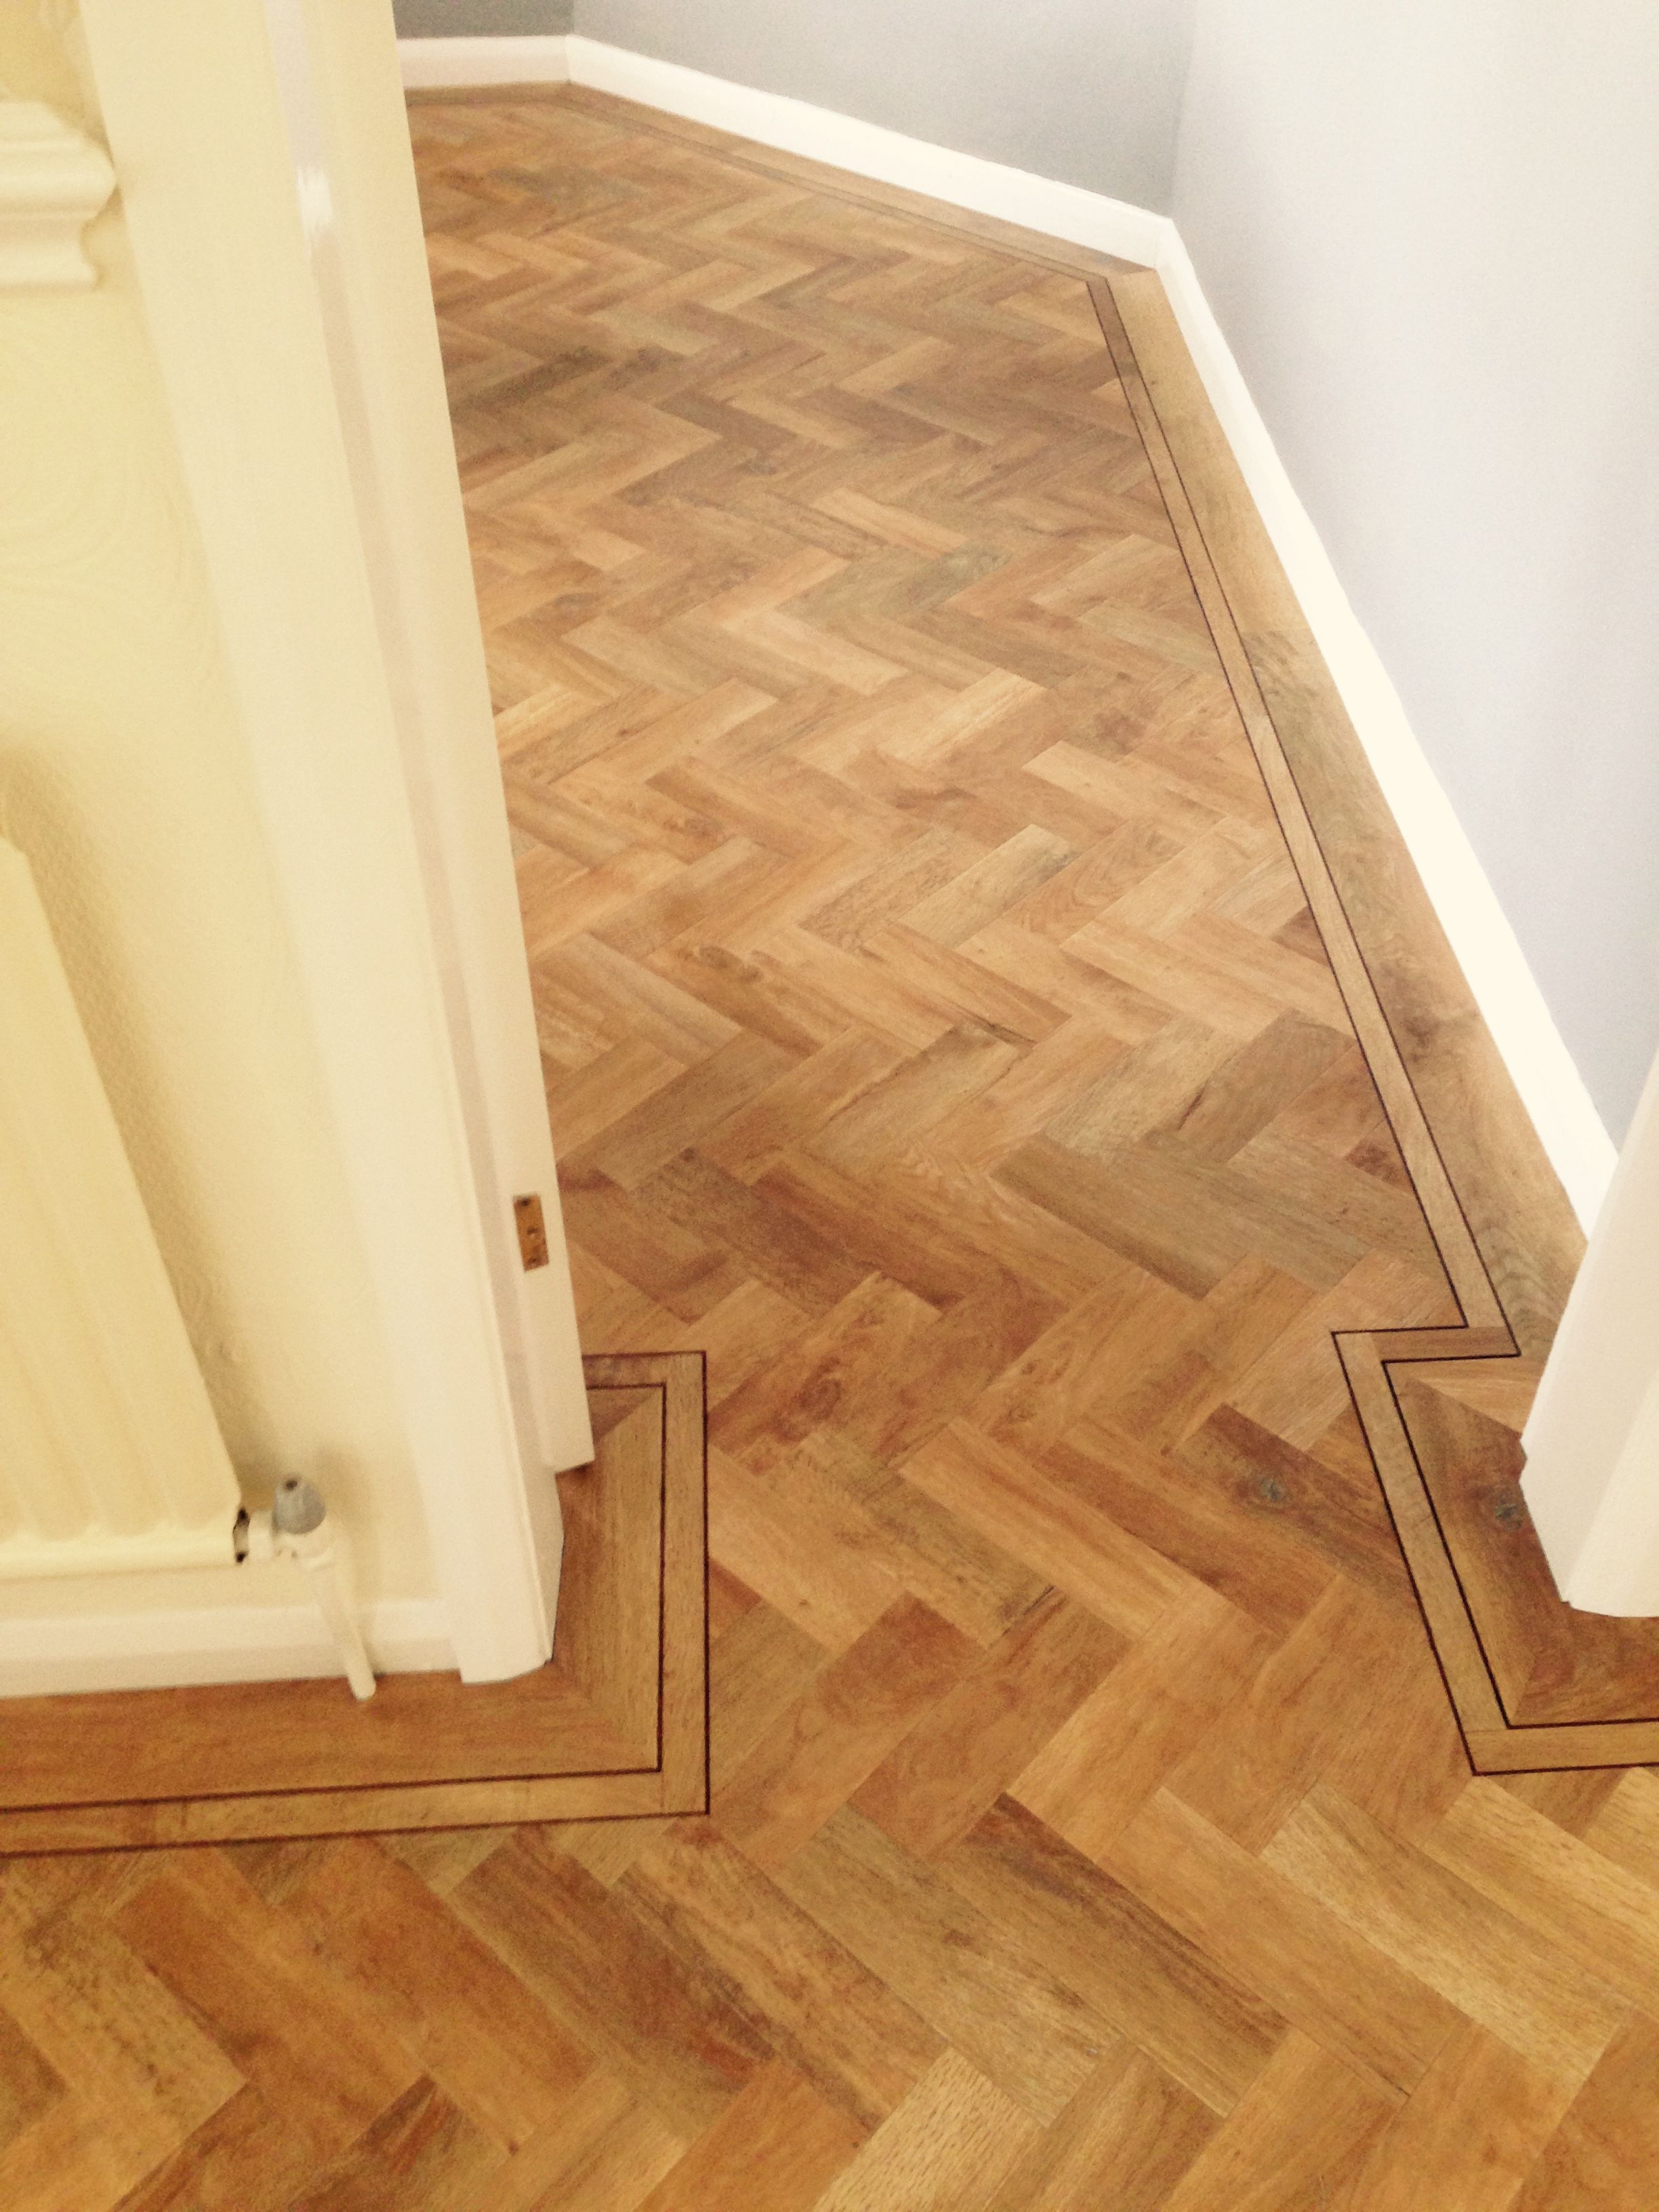 hardwood more finishes wood make to with your design light ide floor parquet rustic blonde modern ideas how floors look open colors interior flooring